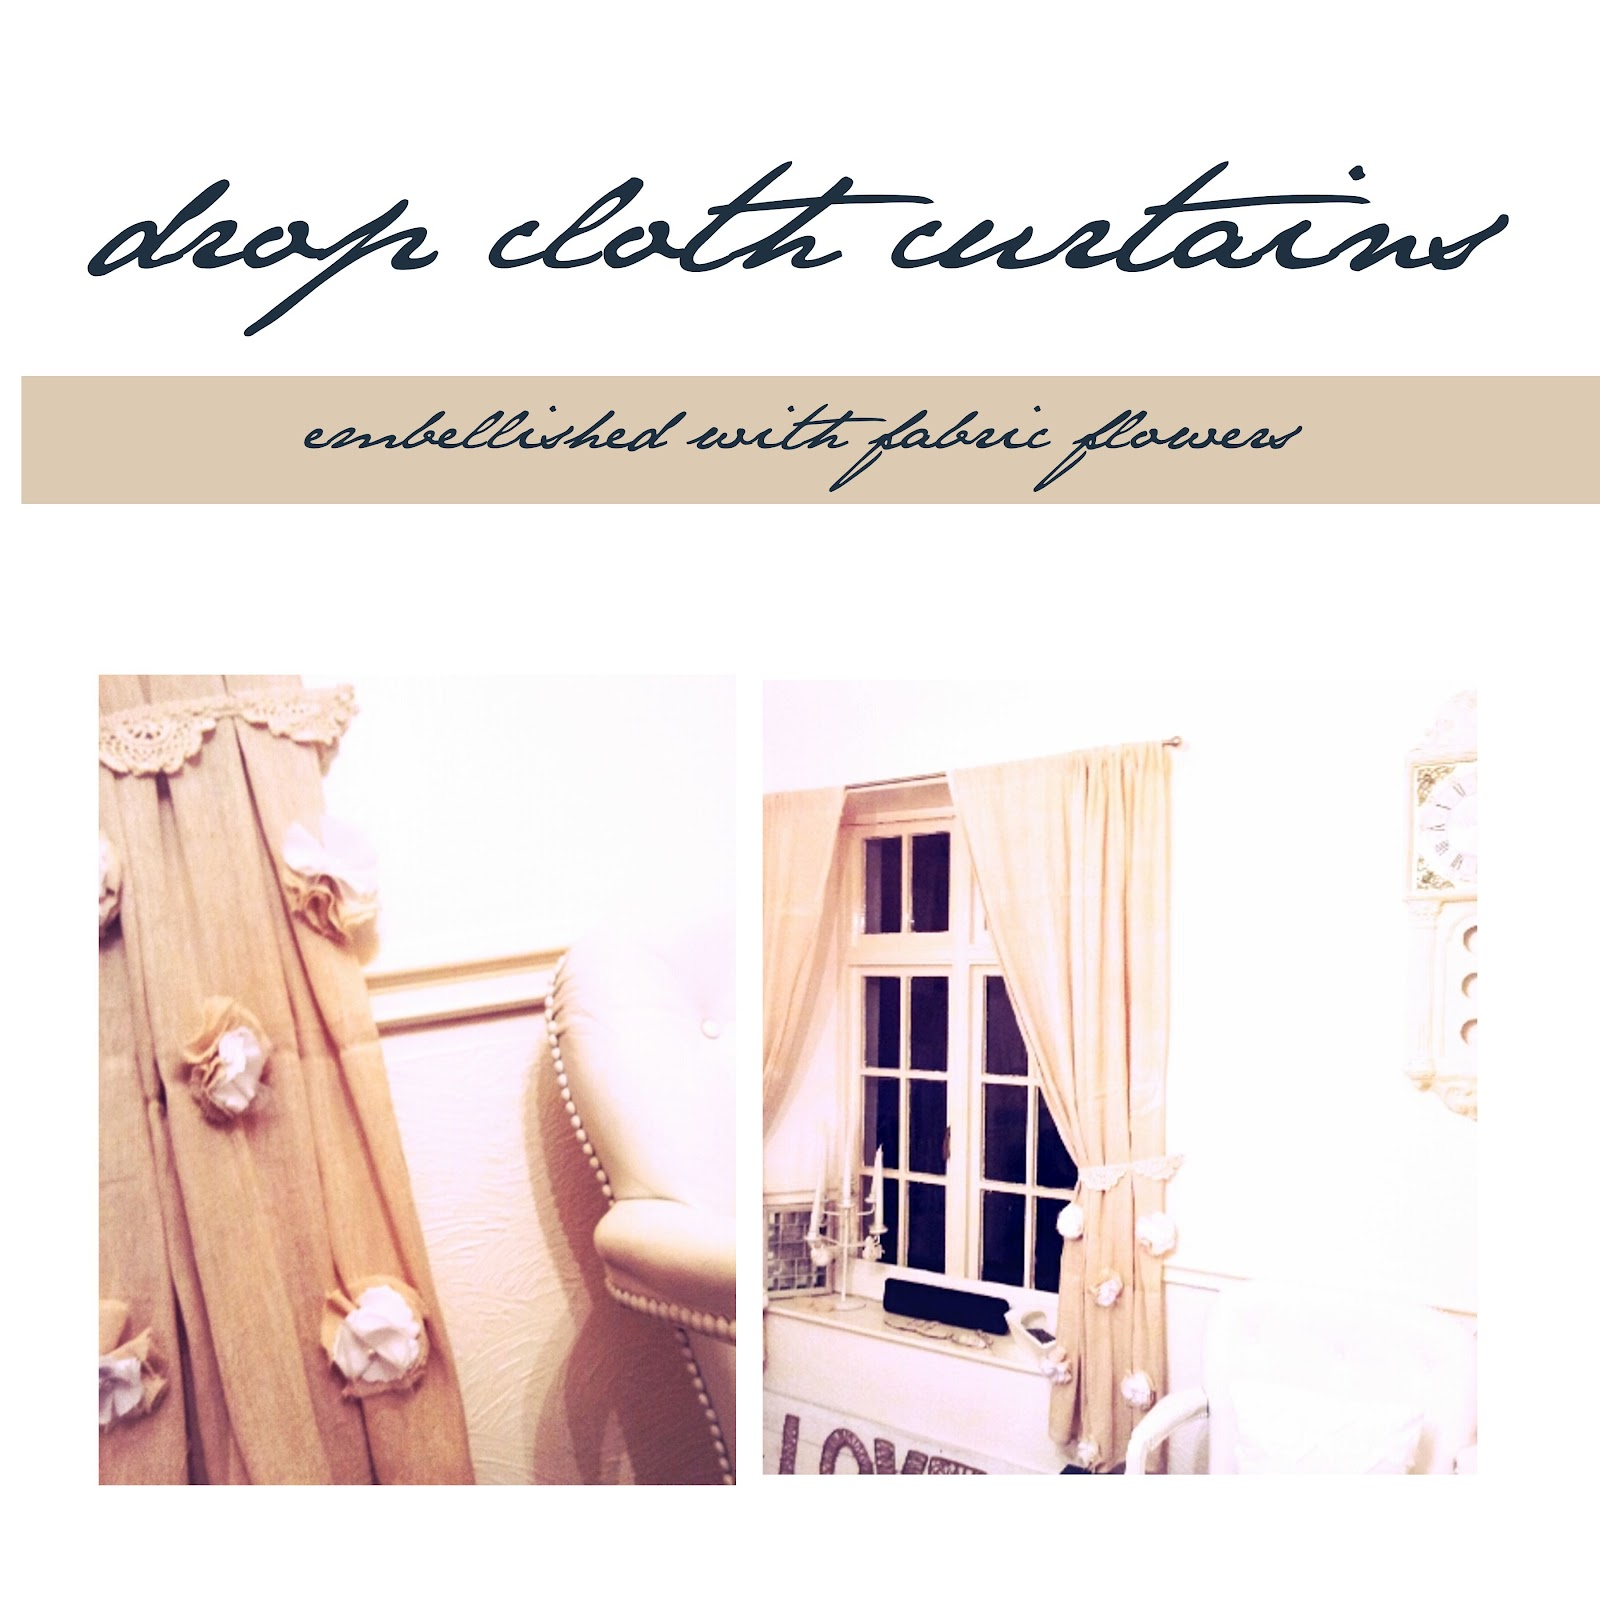 Drop Cloth Curtains Tutorial Embellished Drop Cloth Curtains Tutorial Twigg Studios